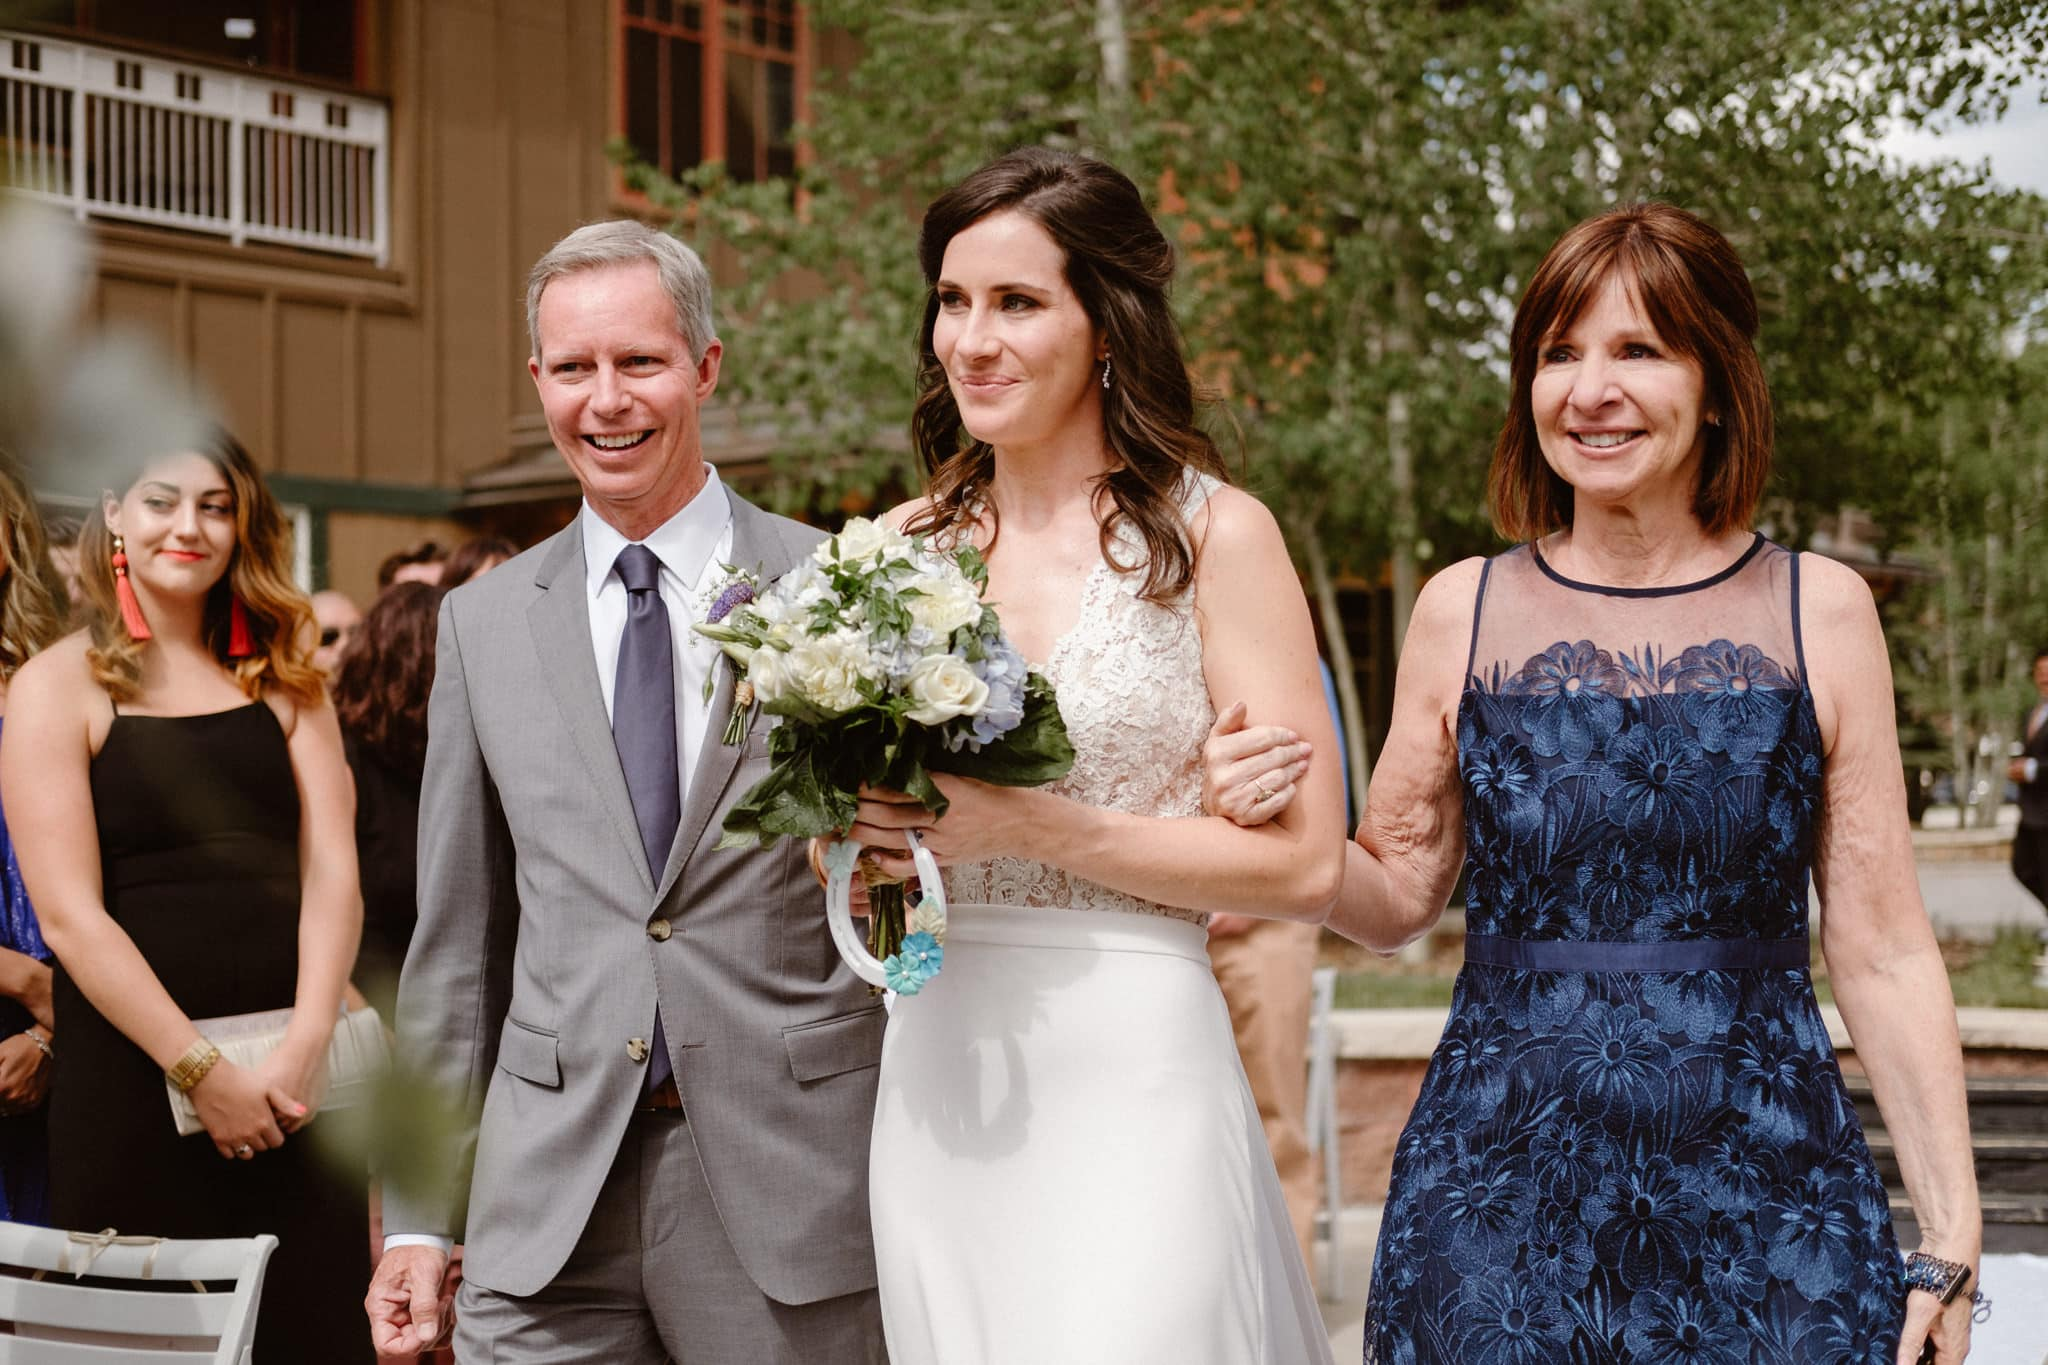 Bride and parents walking down the aisle at Main Street Station wedding, Breckenridge wedding photographer